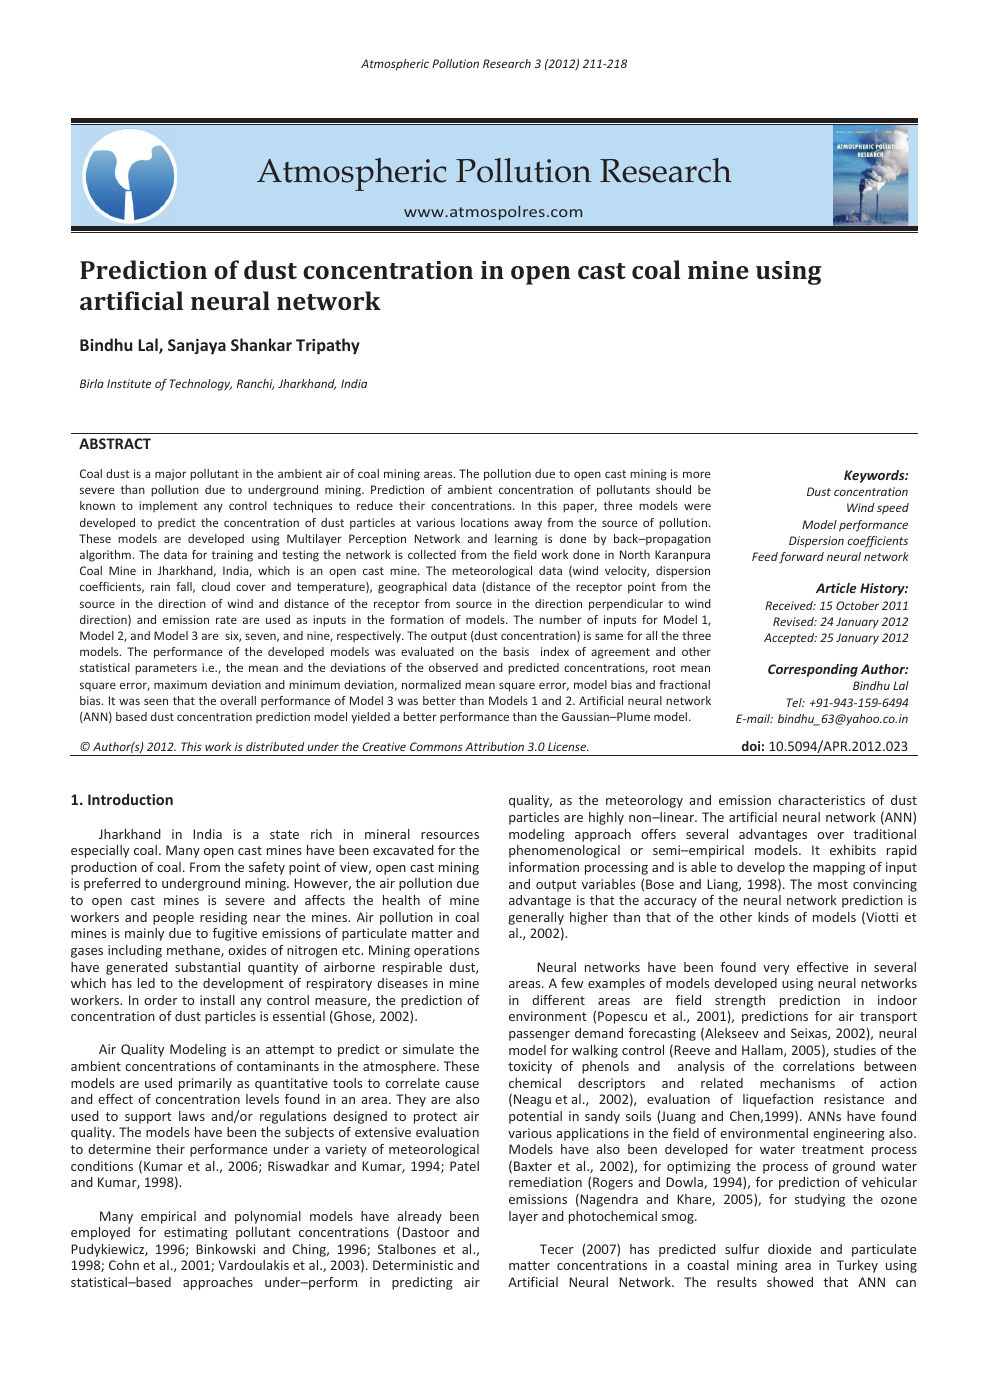 Prediction of dust concentration in open cast coal mine